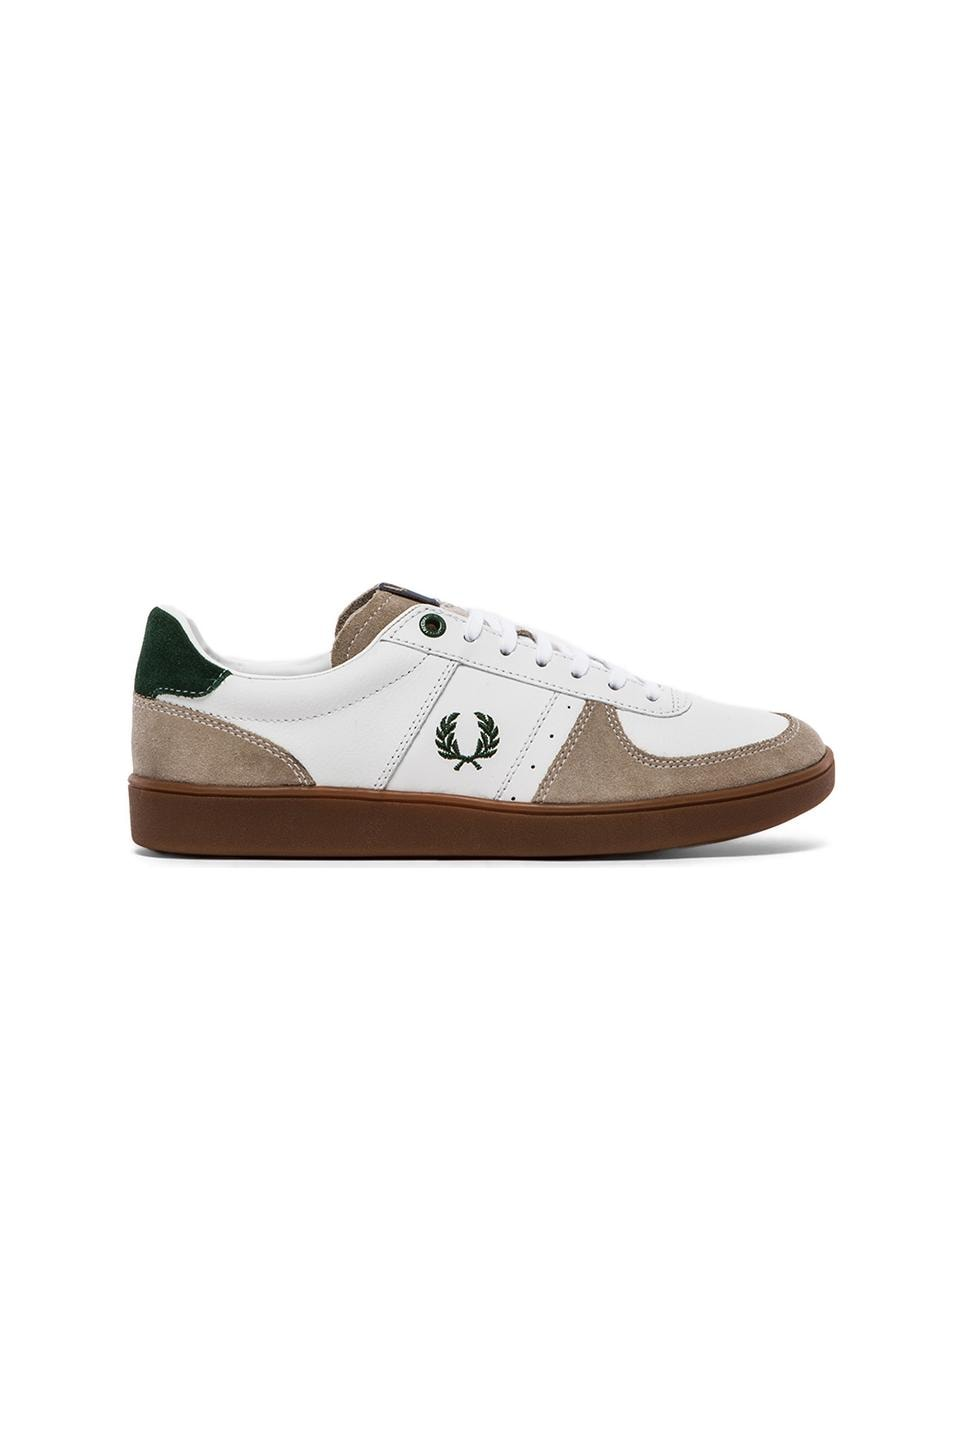 Fred Perry Topspin Leather/ Suede Sneaker in White & Tartan Green